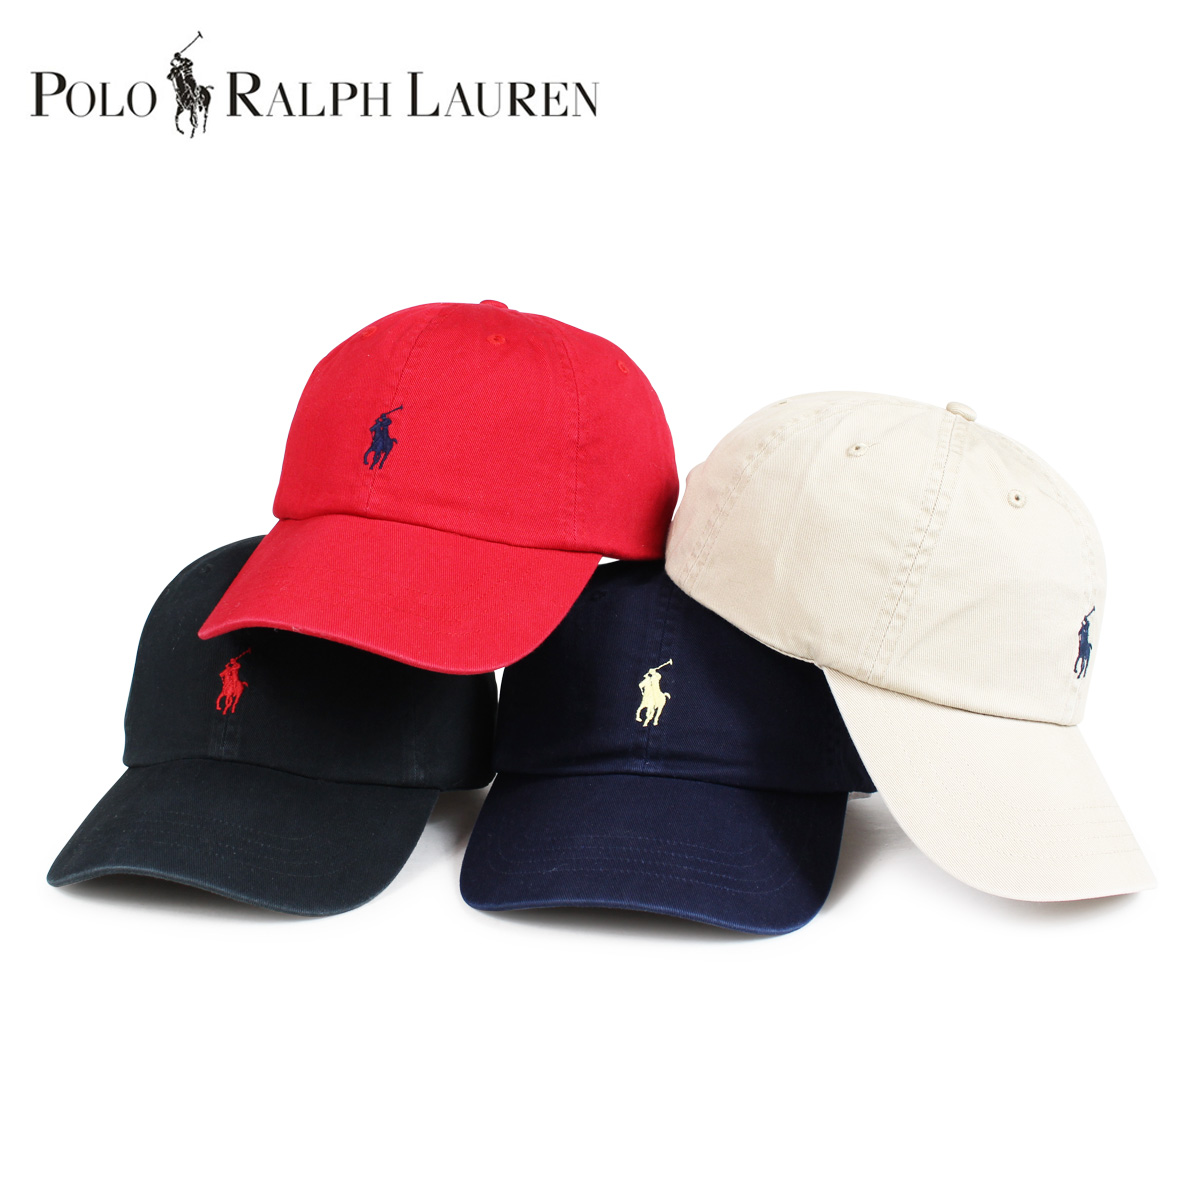 bafecd37c4ab29 POLO RALPH LAUREN COTTON CHINO BASEBALL CAP polo Ralph Lauren cap hat men  gap Dis cotton ...